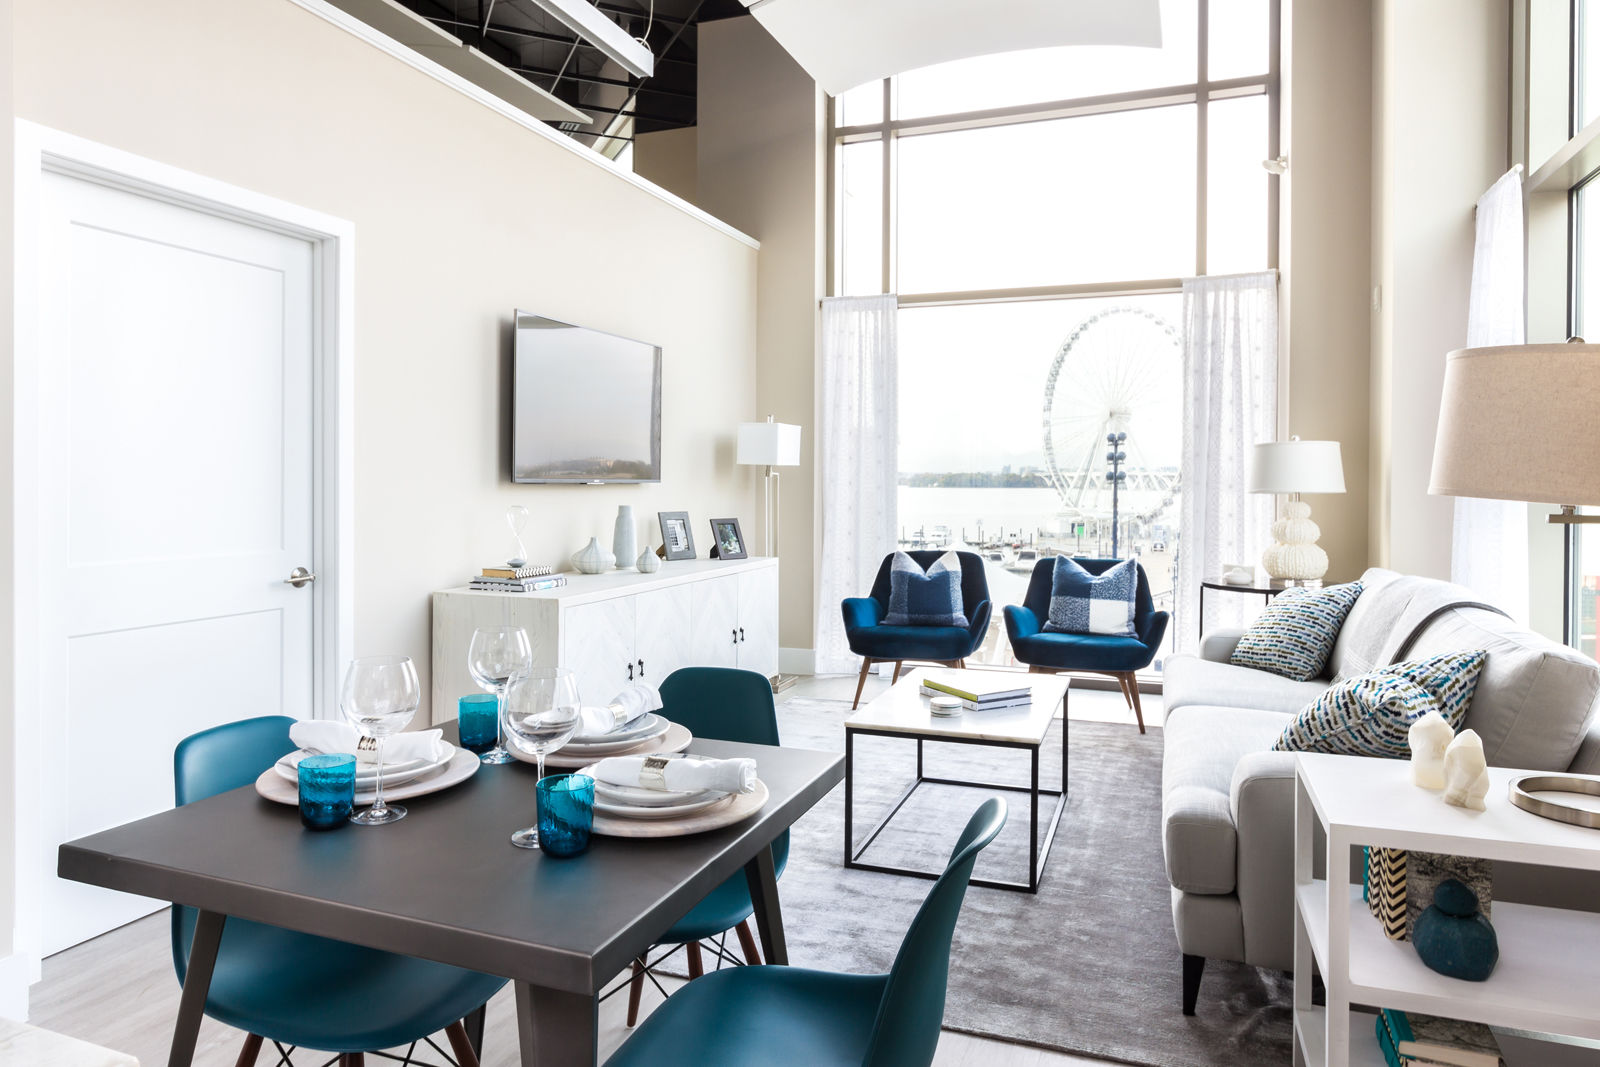 Located on National Harbor's waterfront, many of the condos in The Haven have views of the water and large balconies. The Peterson Companies said units are 10 to 15 percent larger than typical condos in the D.C. area. (Courtesy The Peterson Companies)